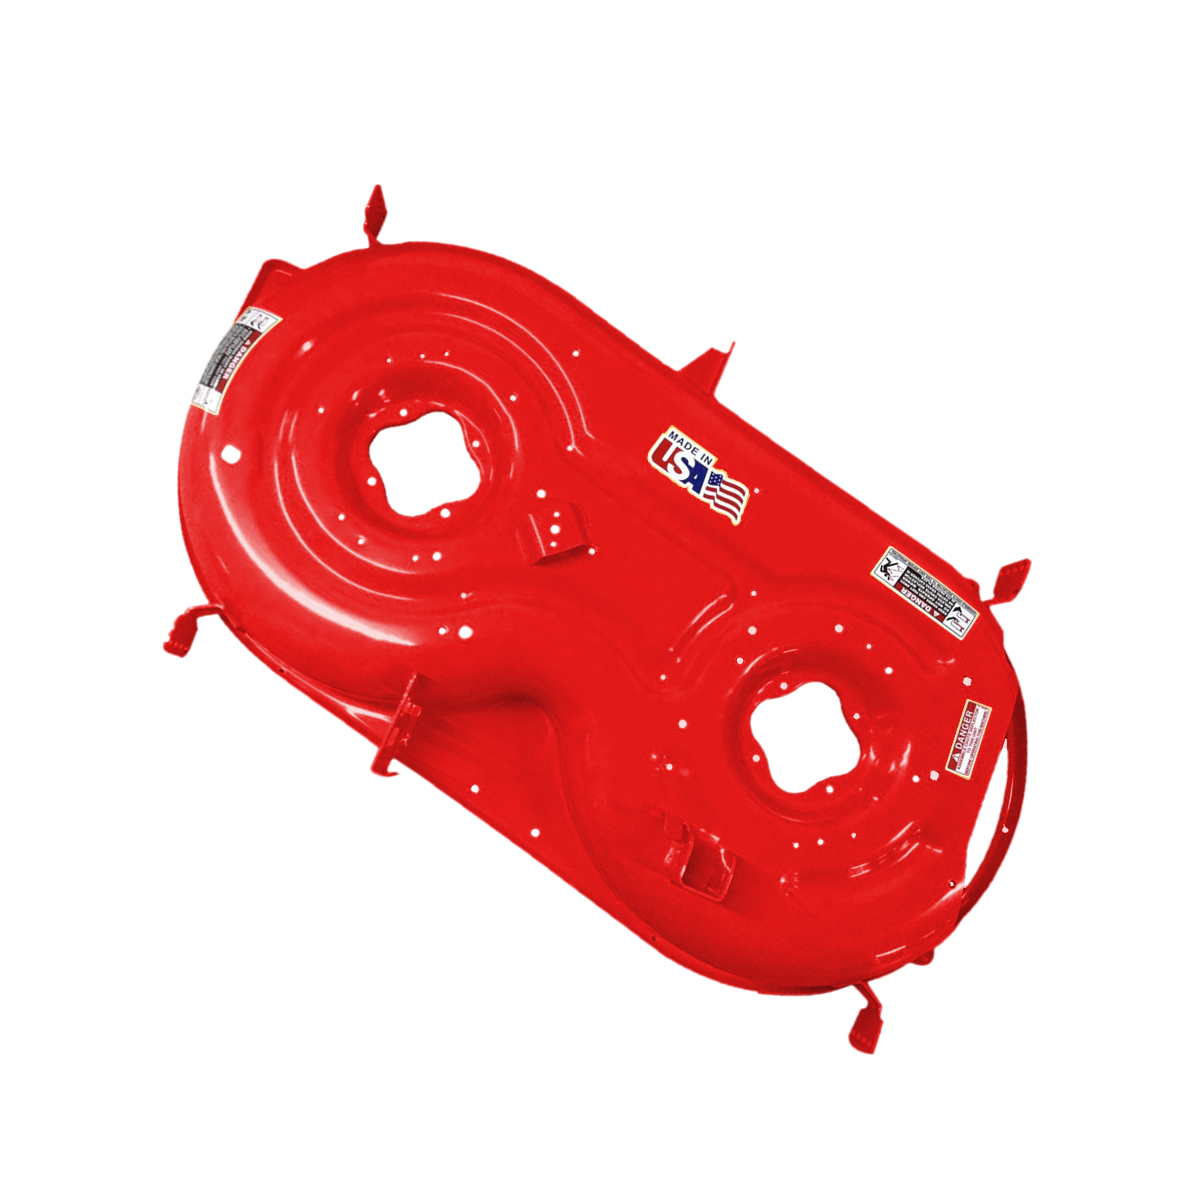 Deck Shell (42 inch) 4W MTD/Troy Bilt Red 983-04598A-0638